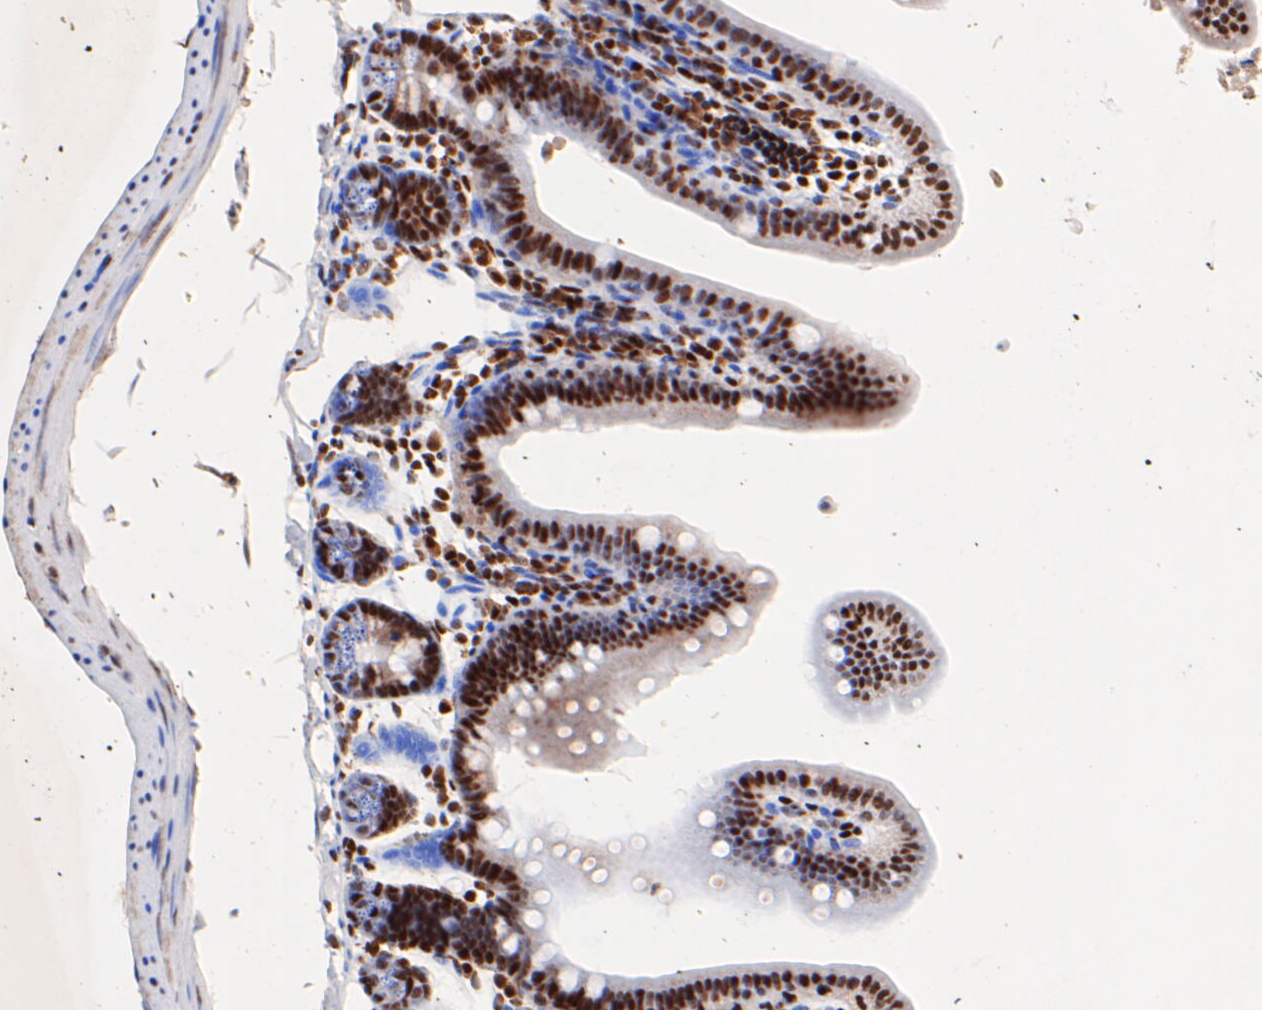 Immunohistochemical analysis of paraffin-embedded mouse small intestine tissue using anti-HMGB2 antibody. The section was pre-treated using heat mediated antigen retrieval with sodium citrate buffer (pH 6.0) for 20 minutes. The tissues were blocked in 5% BSA for 30 minutes at room temperature, washed with ddH2O and PBS, and then probed with the primary antibody (EM1902-06, 1/1,000)  for 30 minutes at room temperature. The detection was performed using an HRP conjugated compact polymer system. DAB was used as the chromogen. Tissues were counterstained with hematoxylin and mounted with DPX.